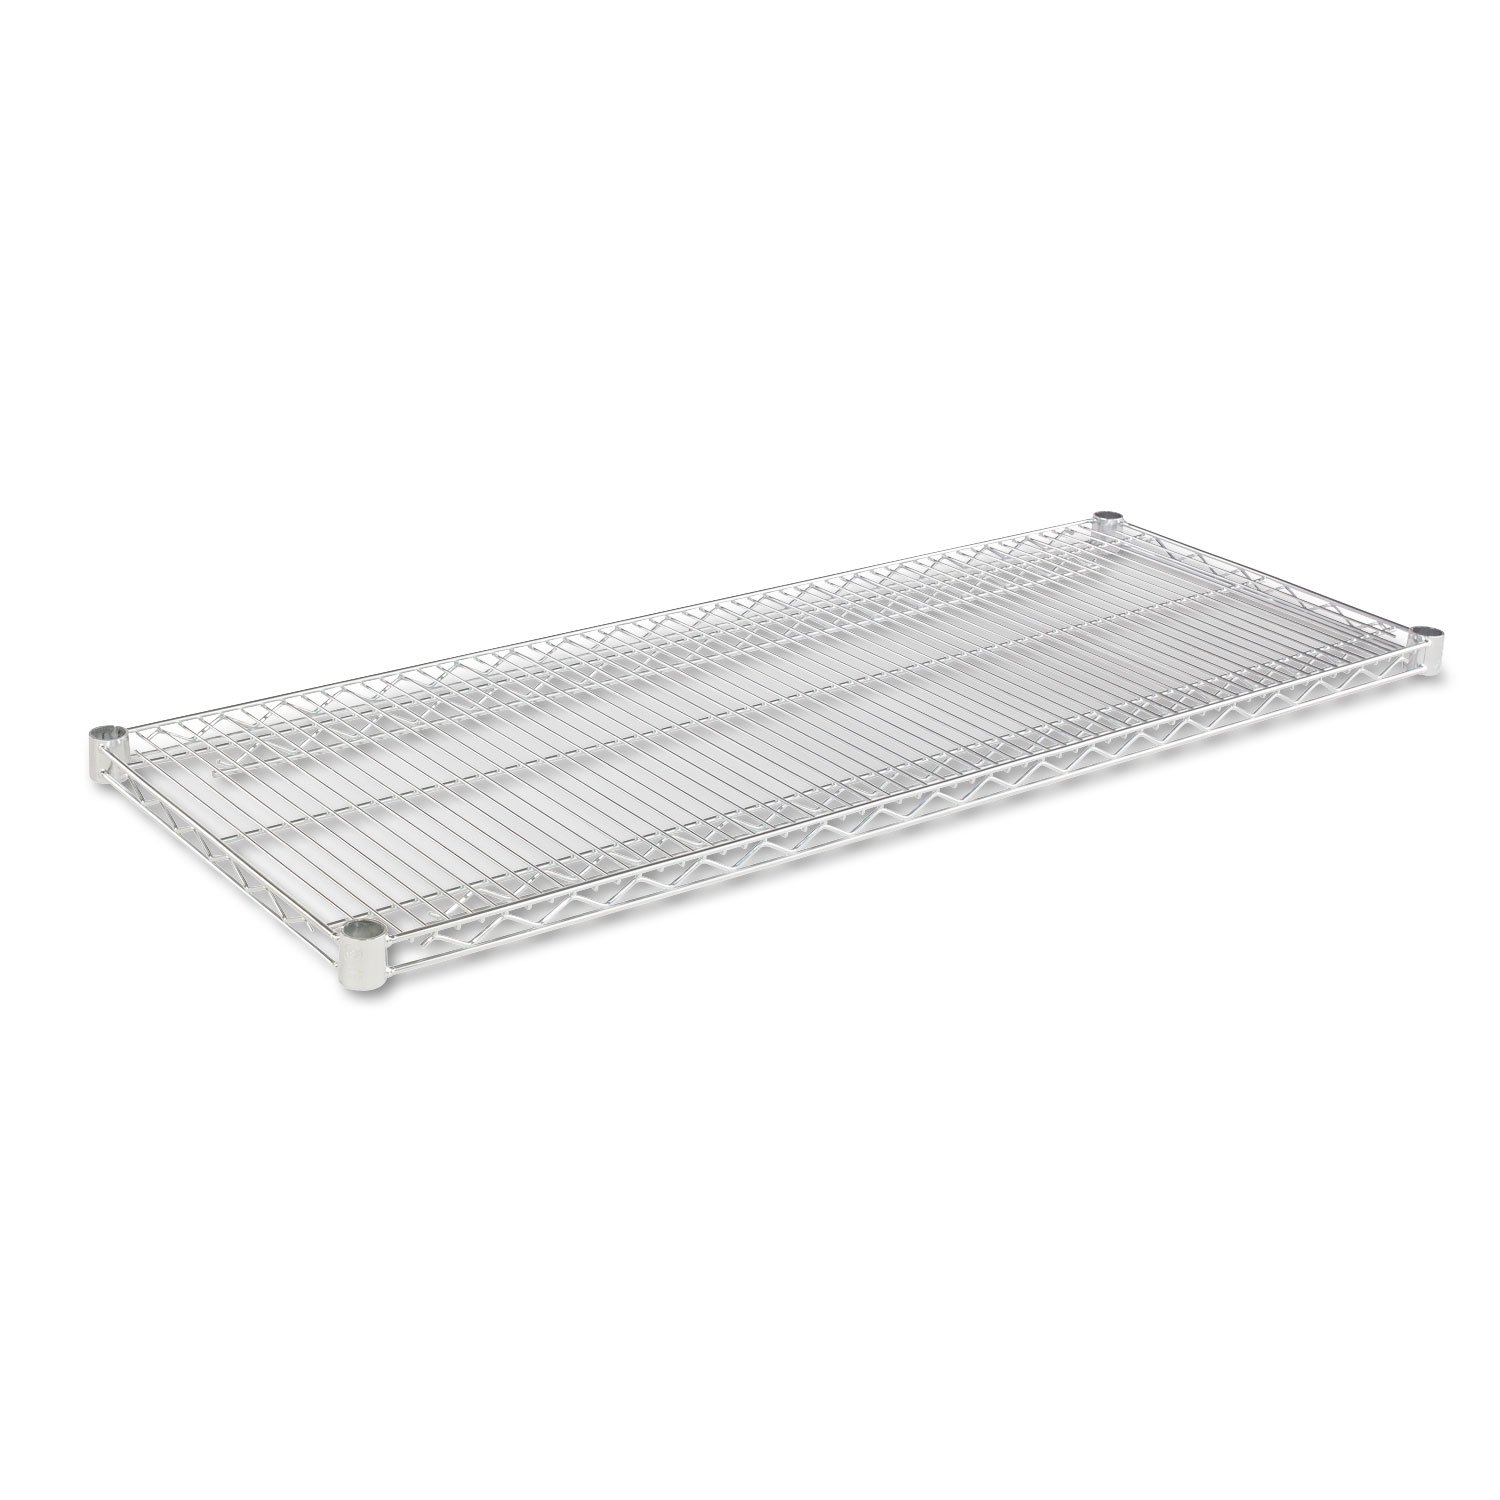 ALESW584818SR - Best Industrial Wire Shelving Extra Wire Shelves